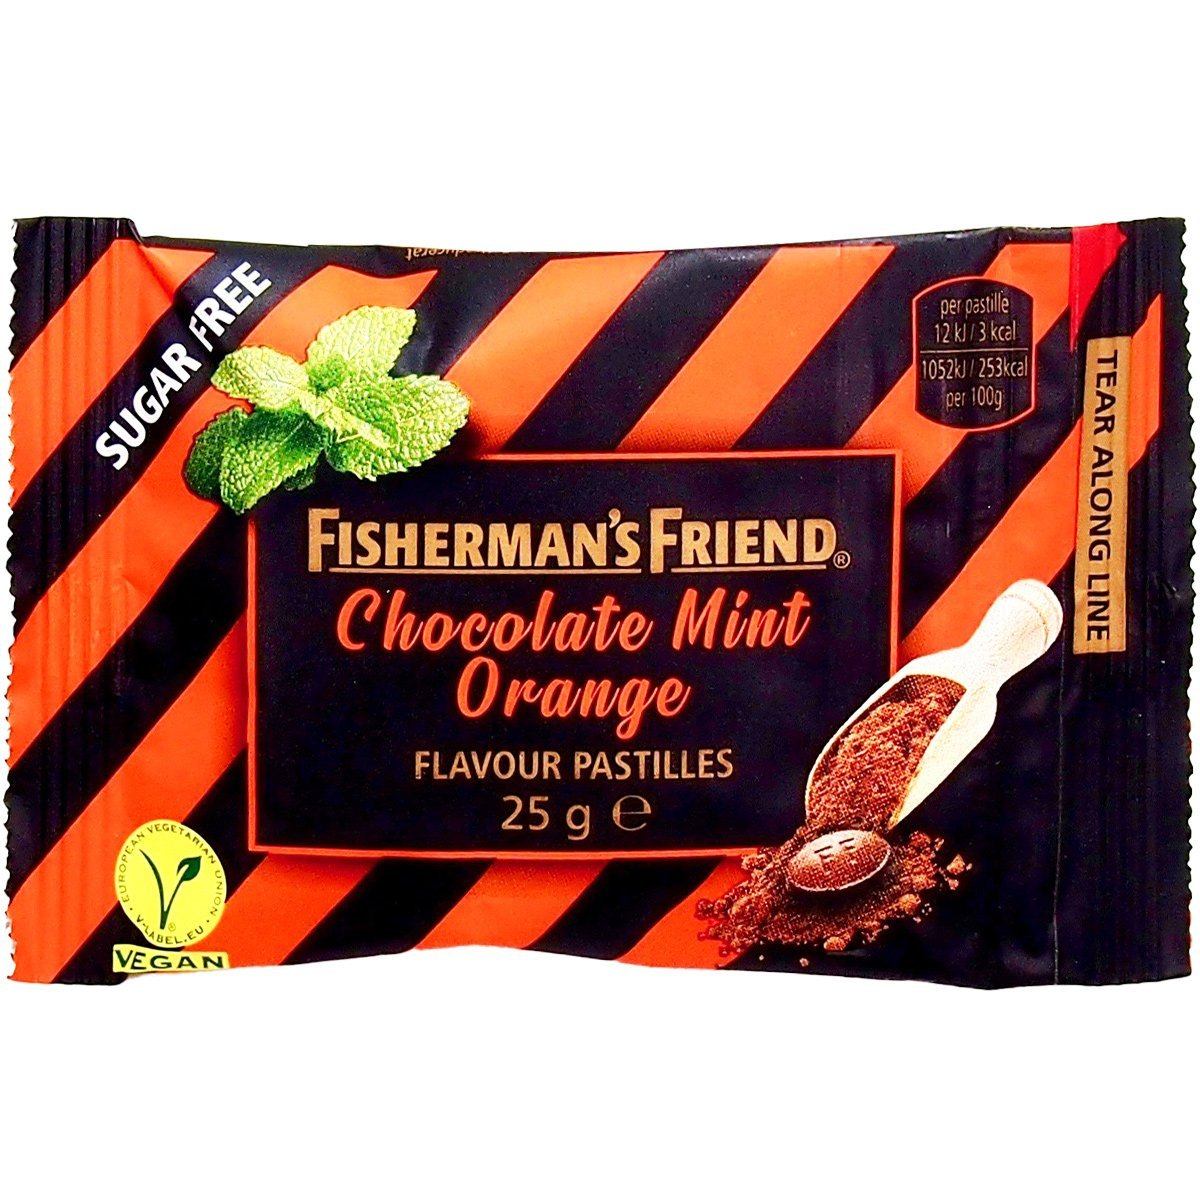 Fisherman's Friend Chocolate Mint Orange ohne Zucker (25g) 1